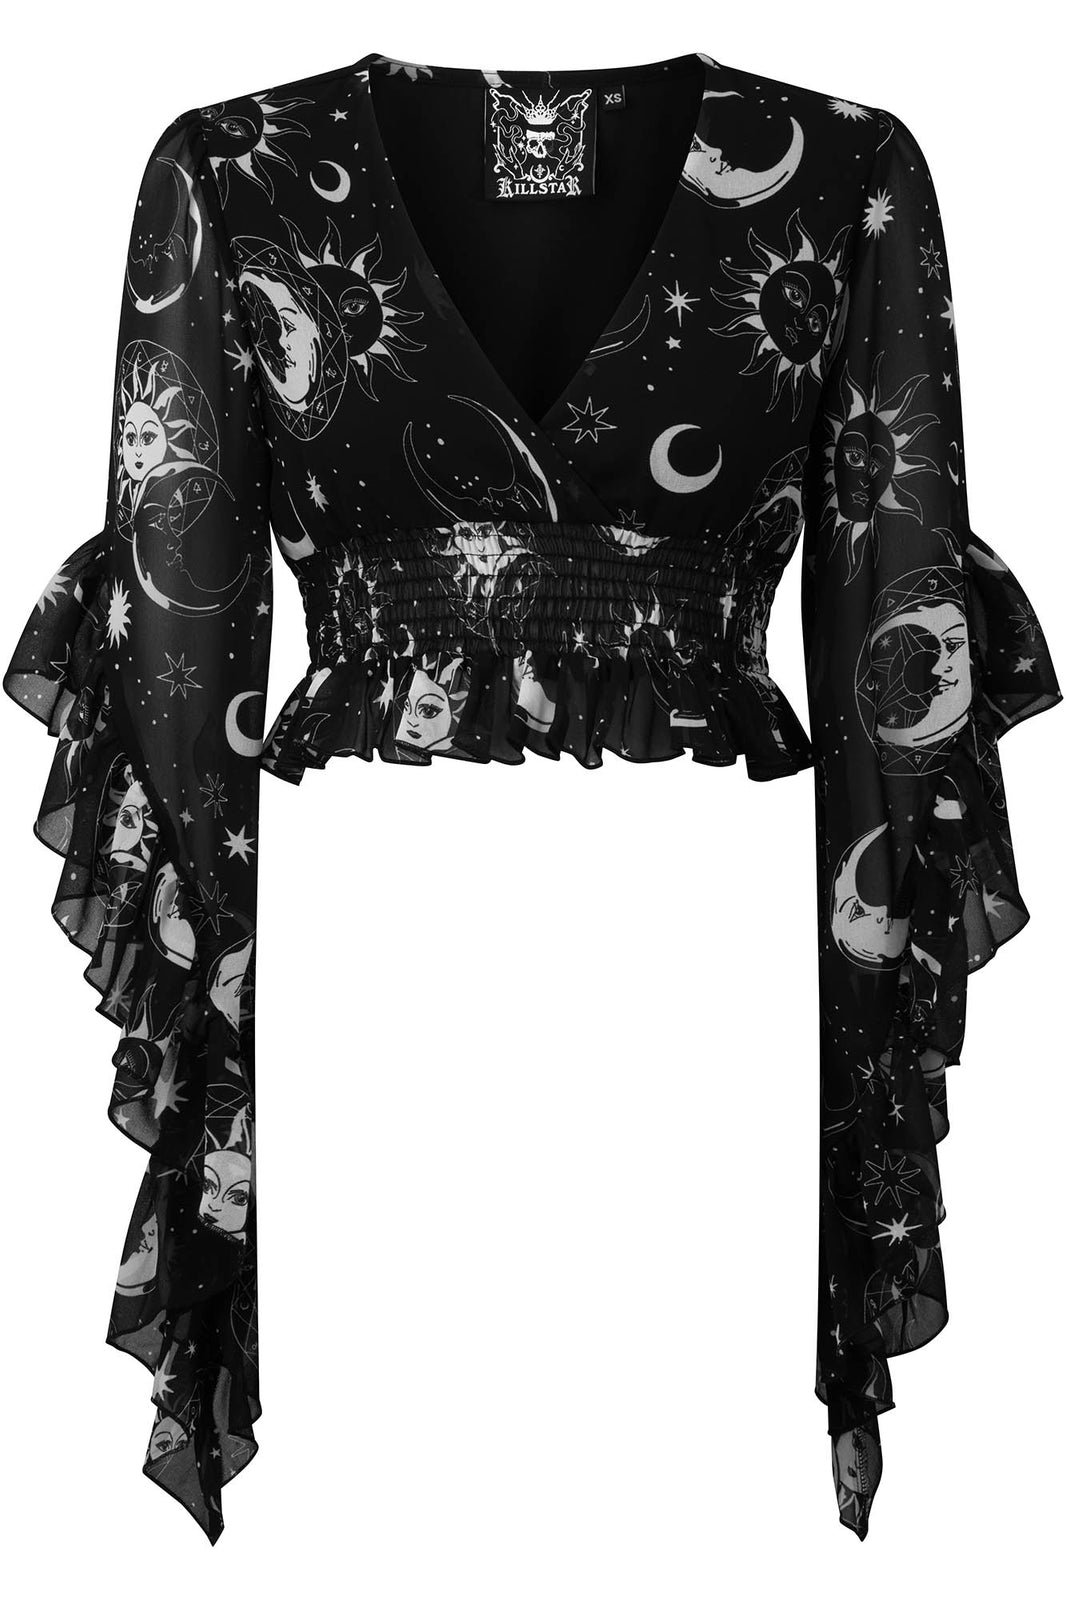 Astral Light Blouse